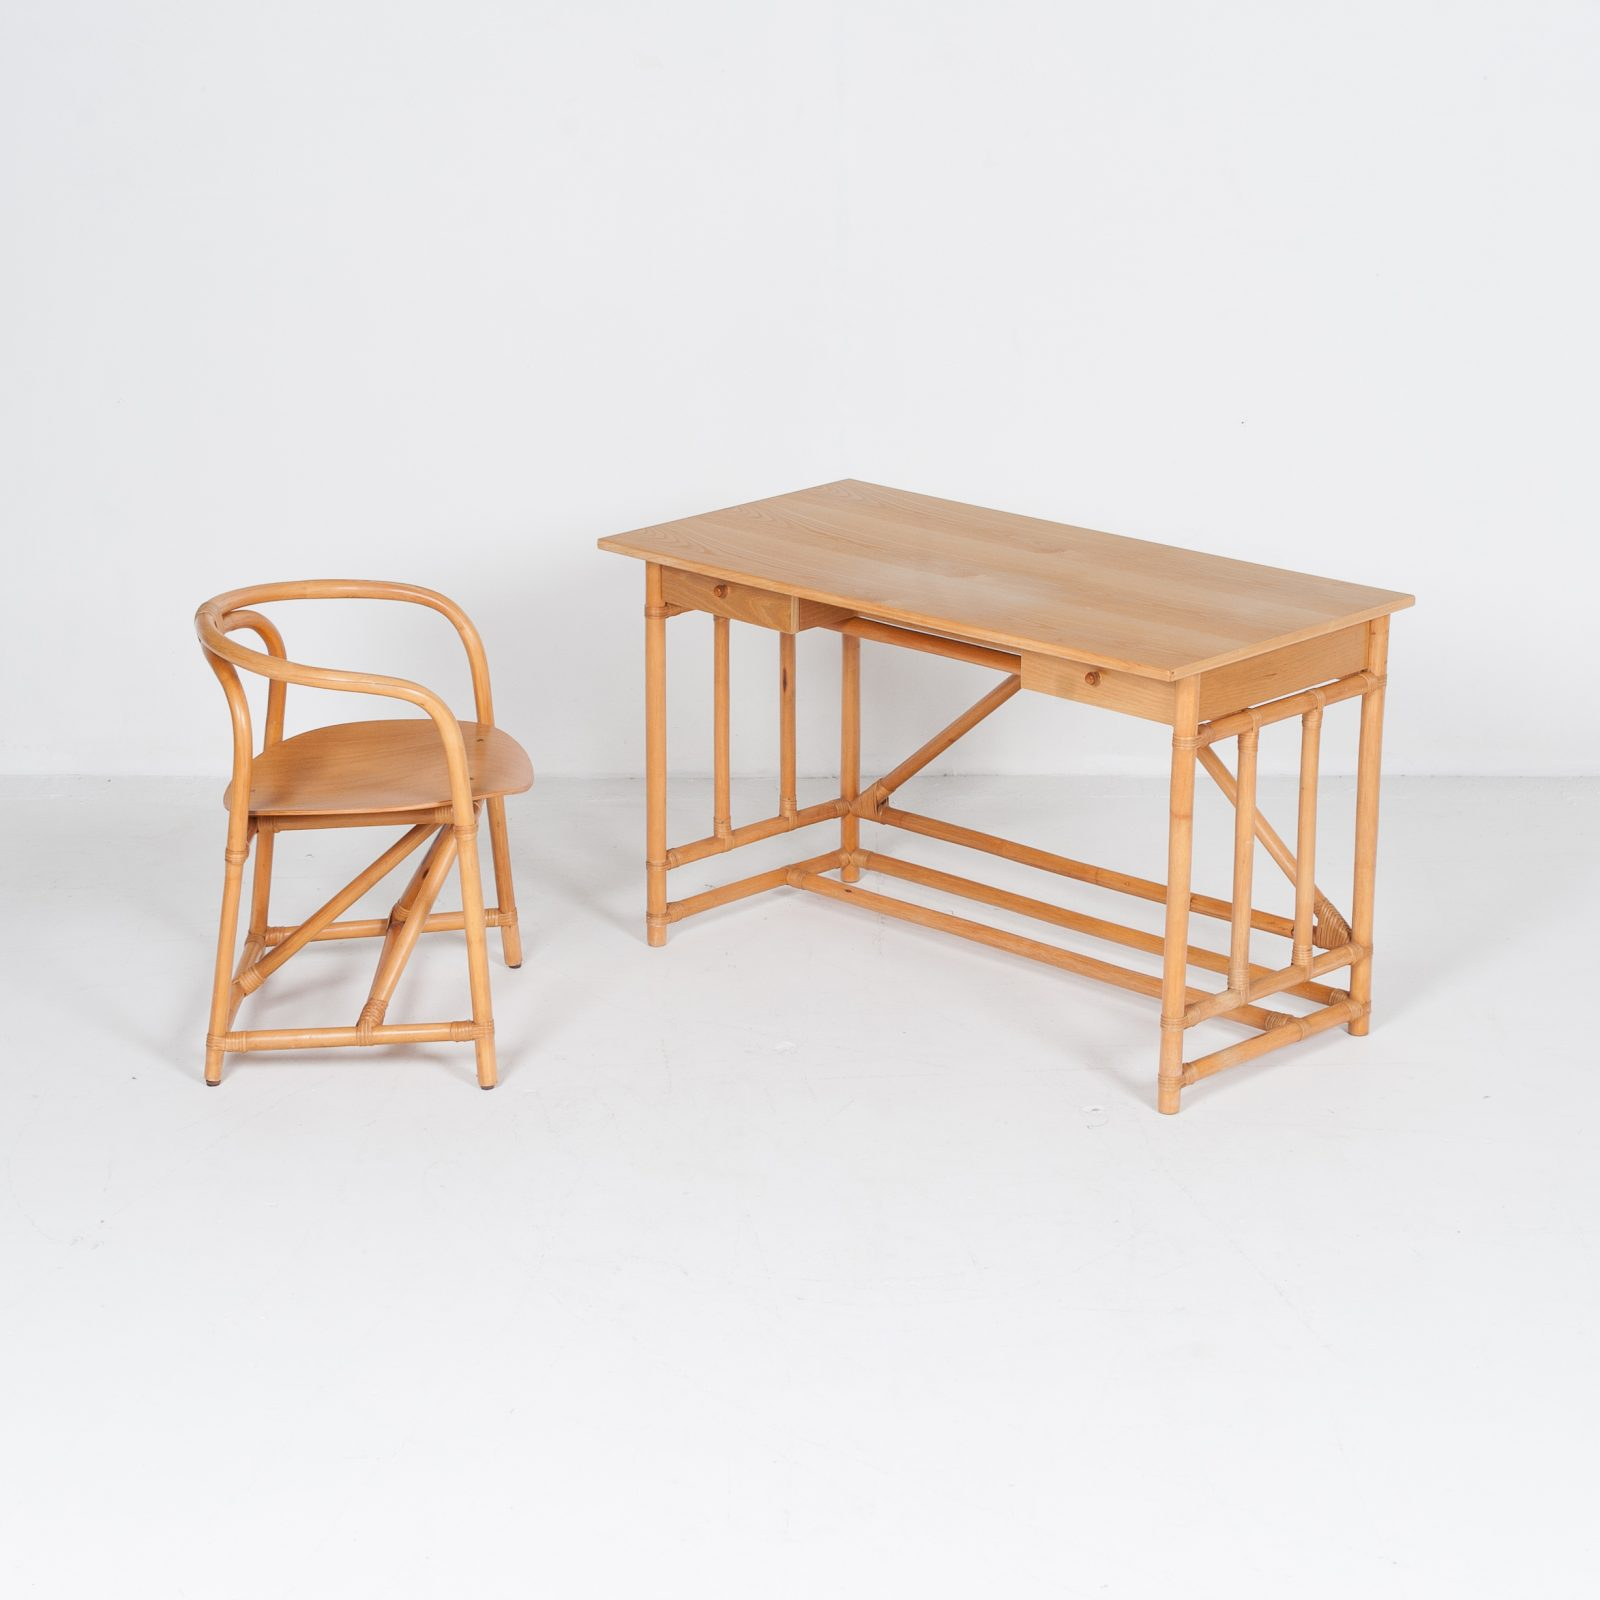 Desk And Chair In Bamboo (mt De 194 705 It)22